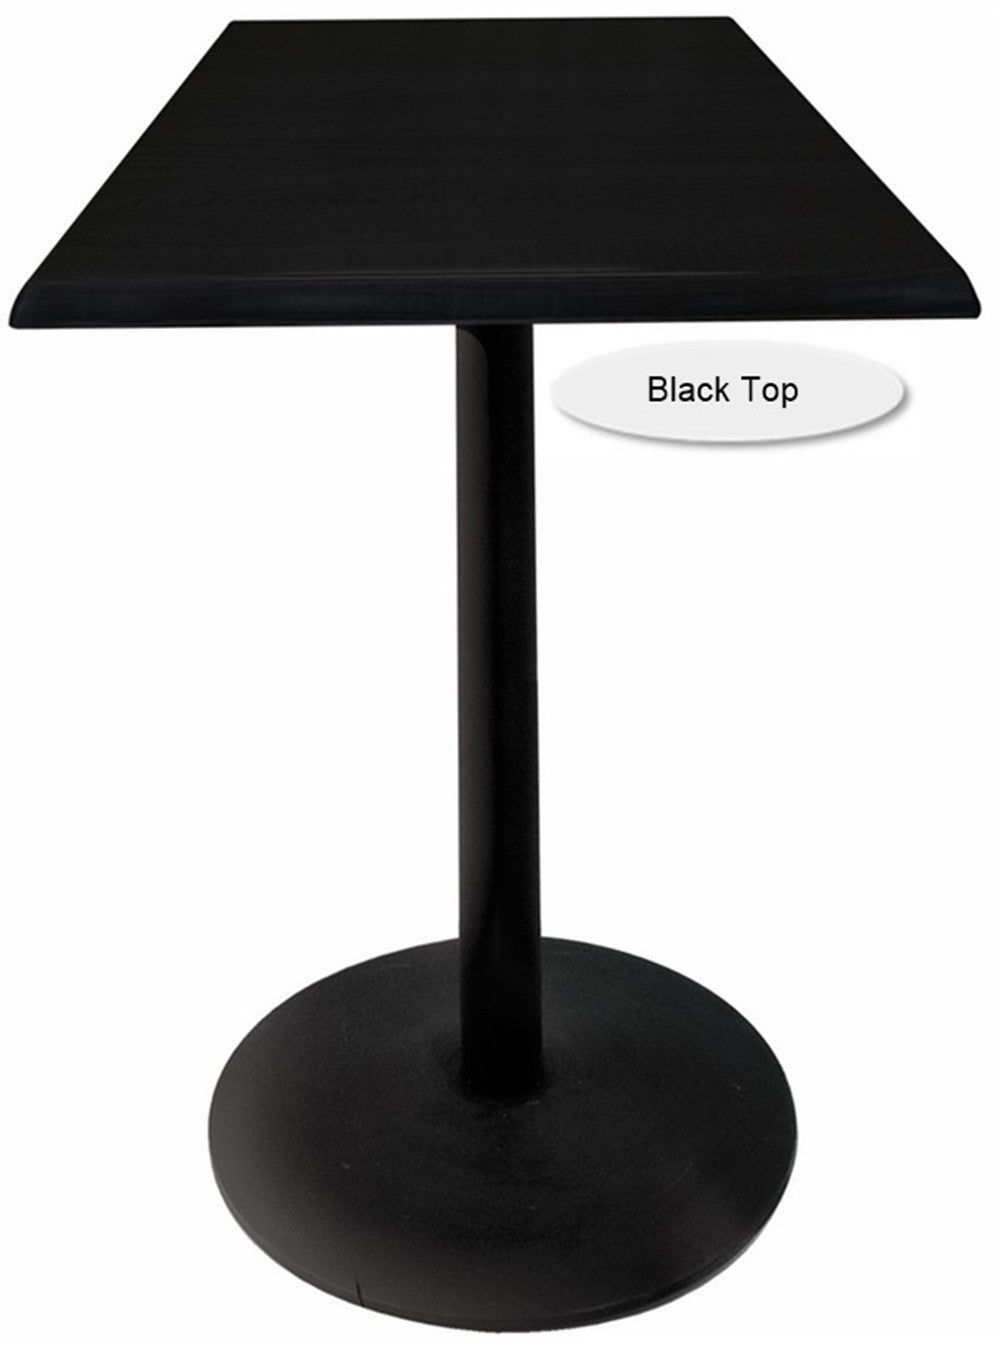 Black Round-Base Square-Top Indoor Outdoor Table - Black Top